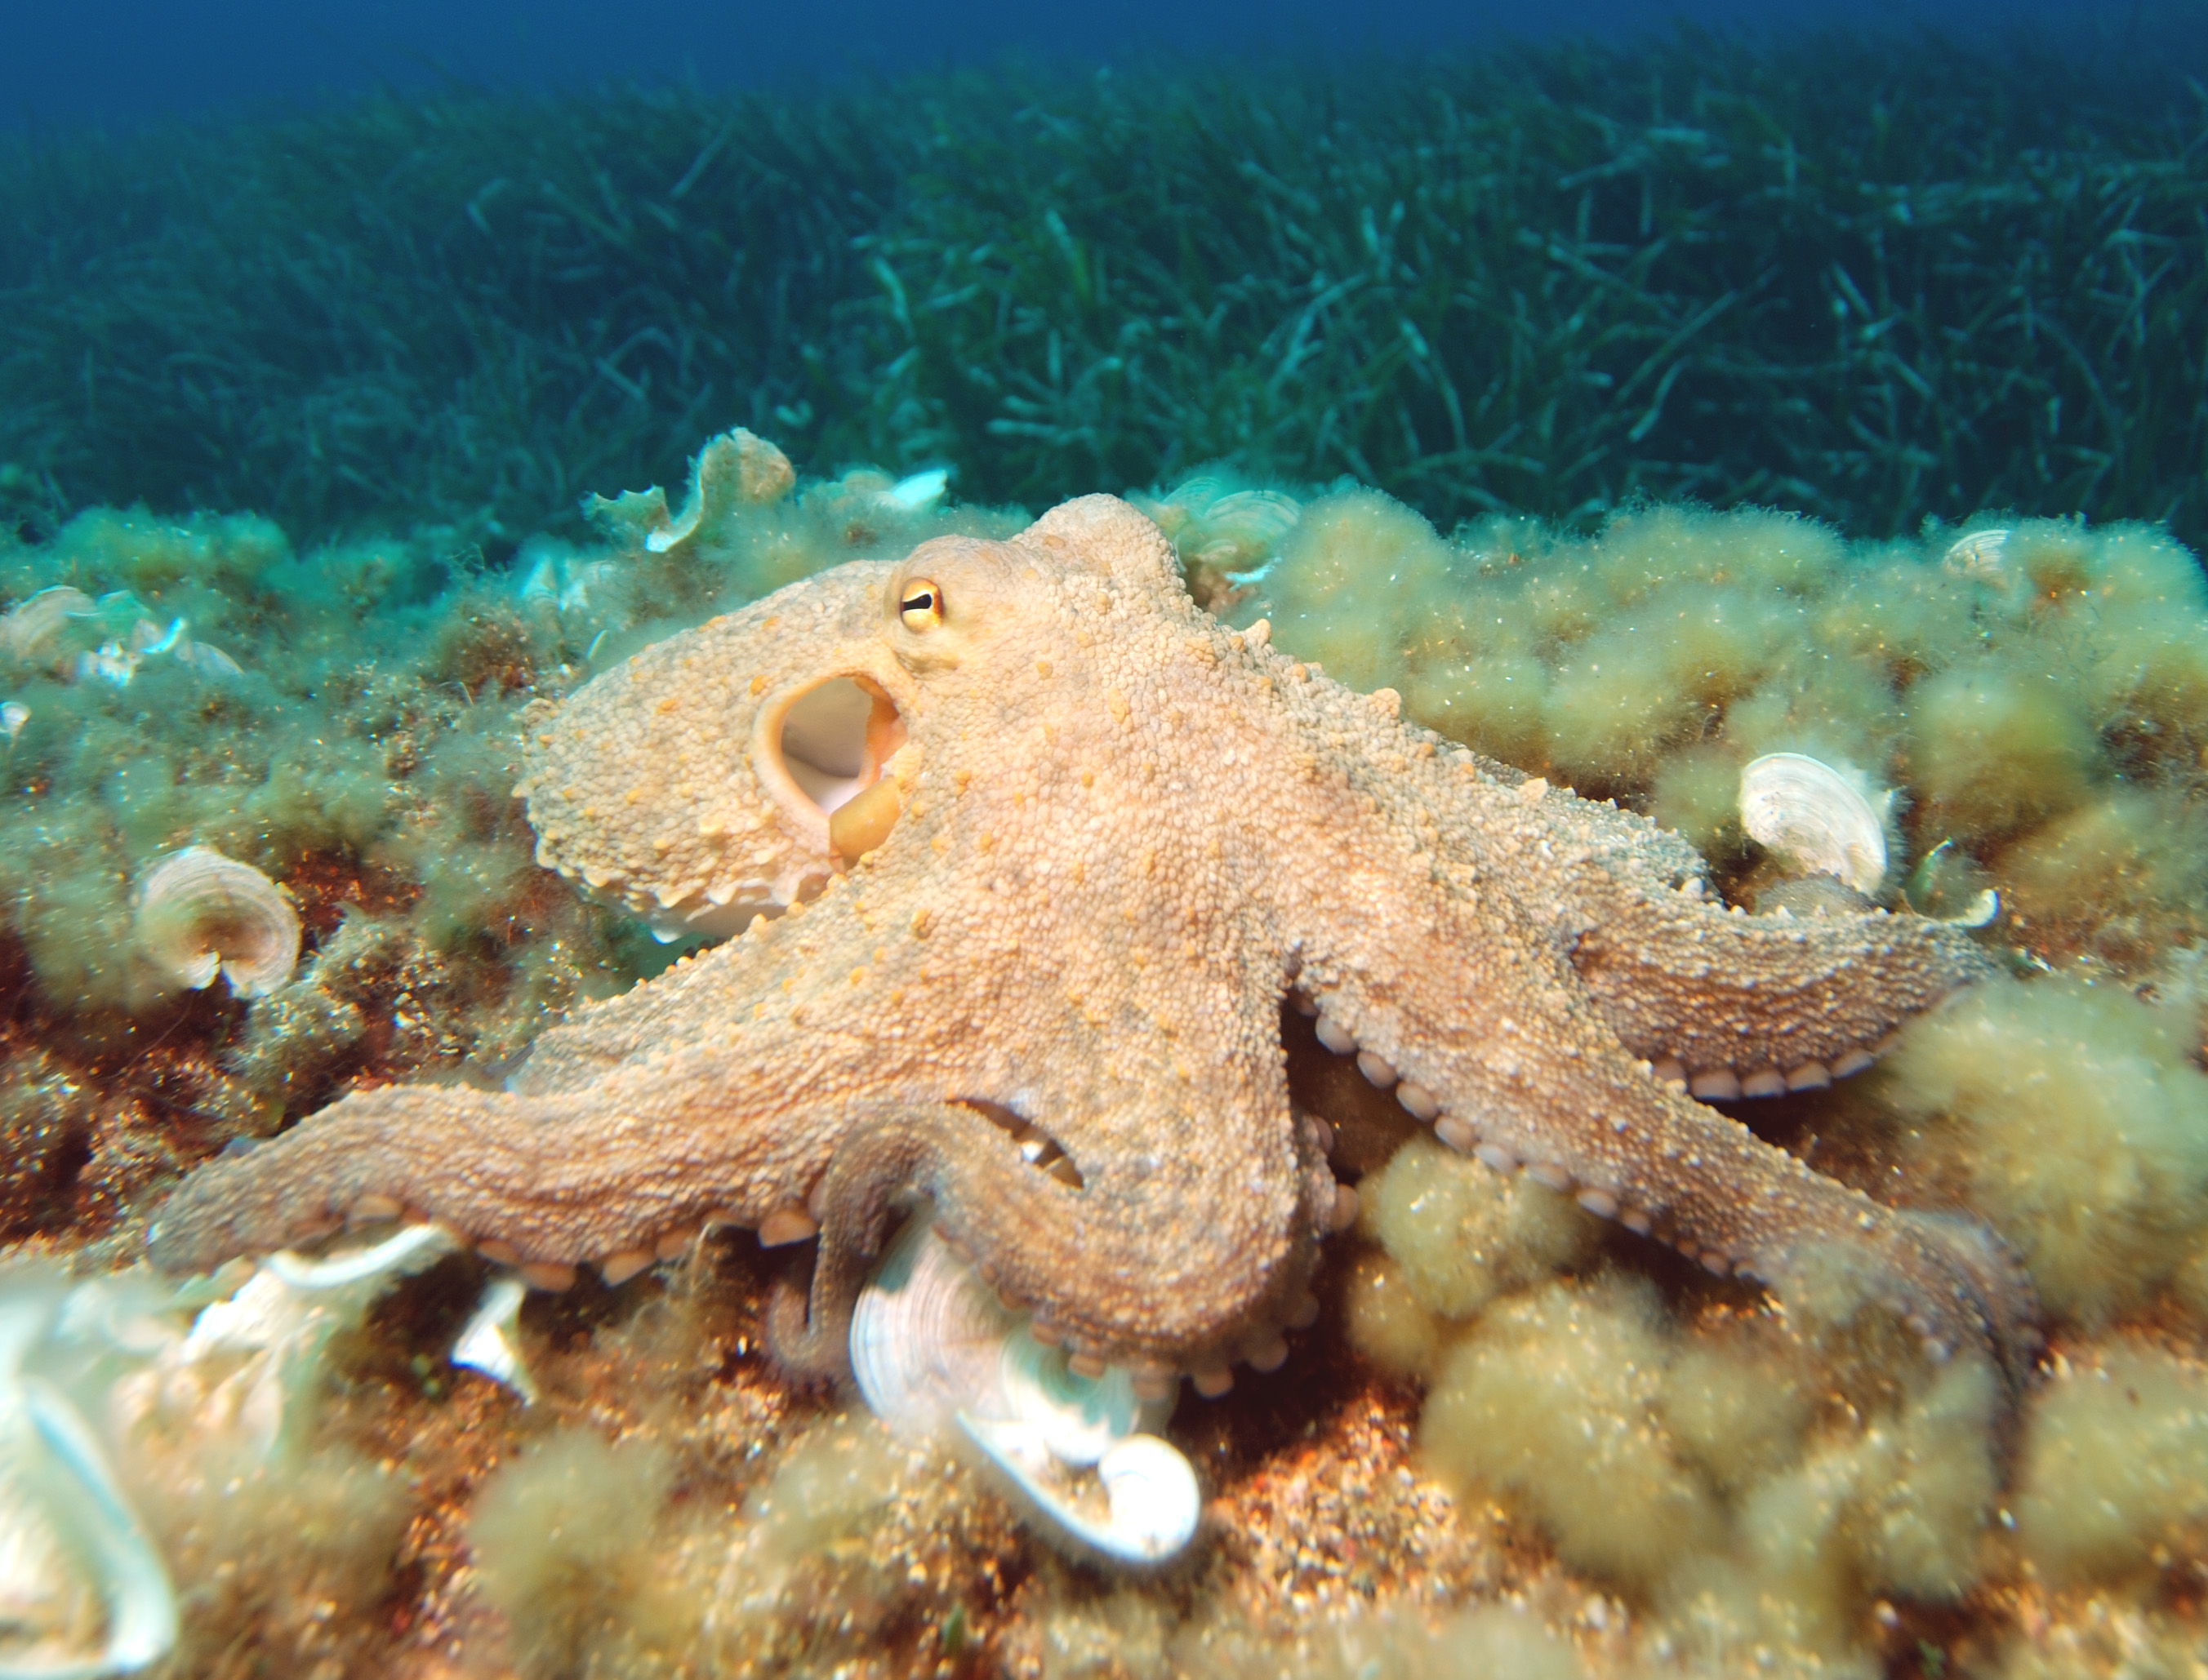 Common octopus (Octopus vulgaris)